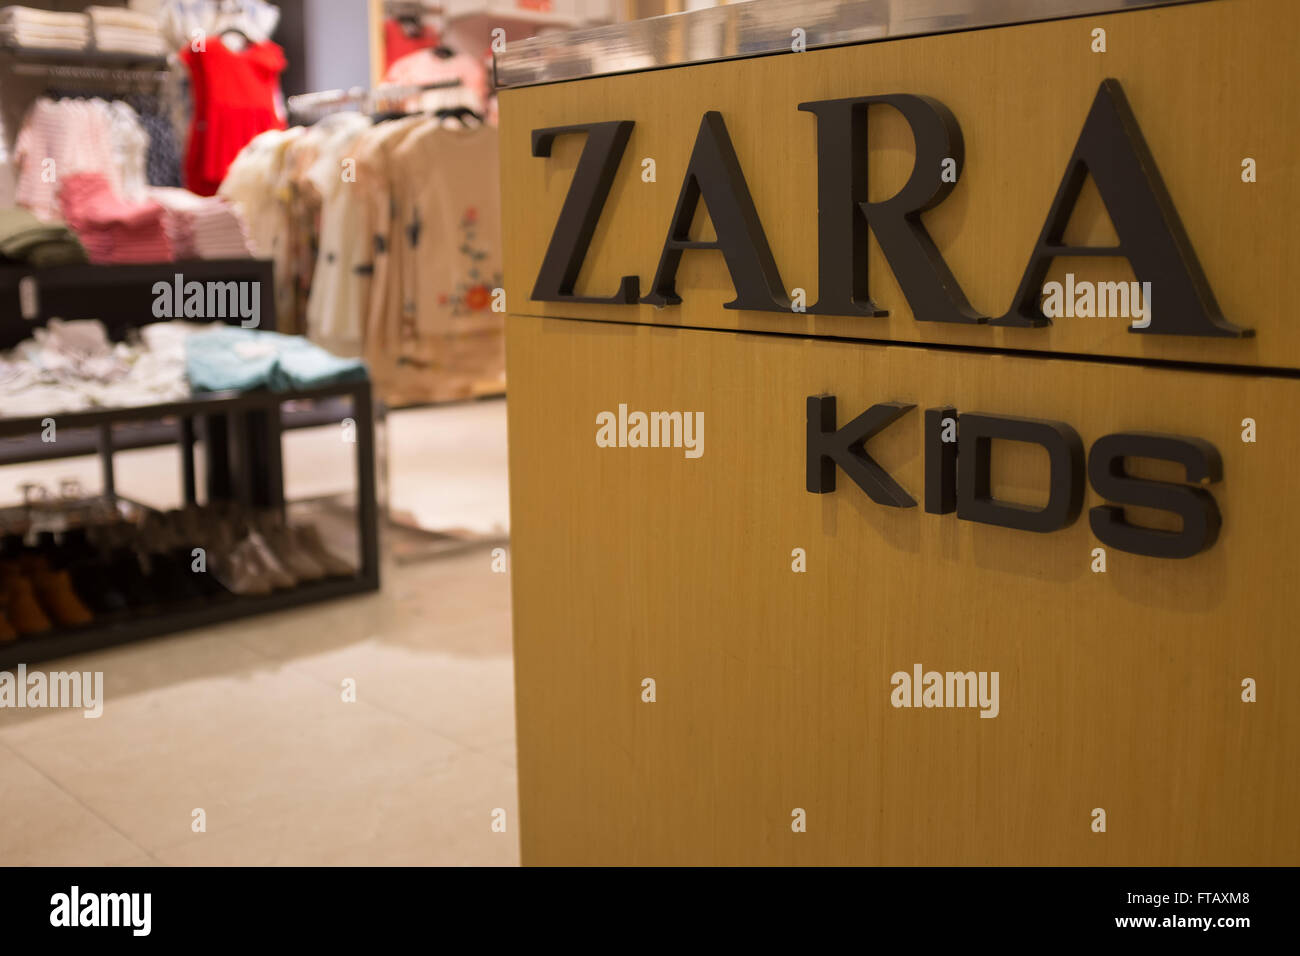 Zara kids shop inside a main zara store in barcelona - Zara kids online espana ...